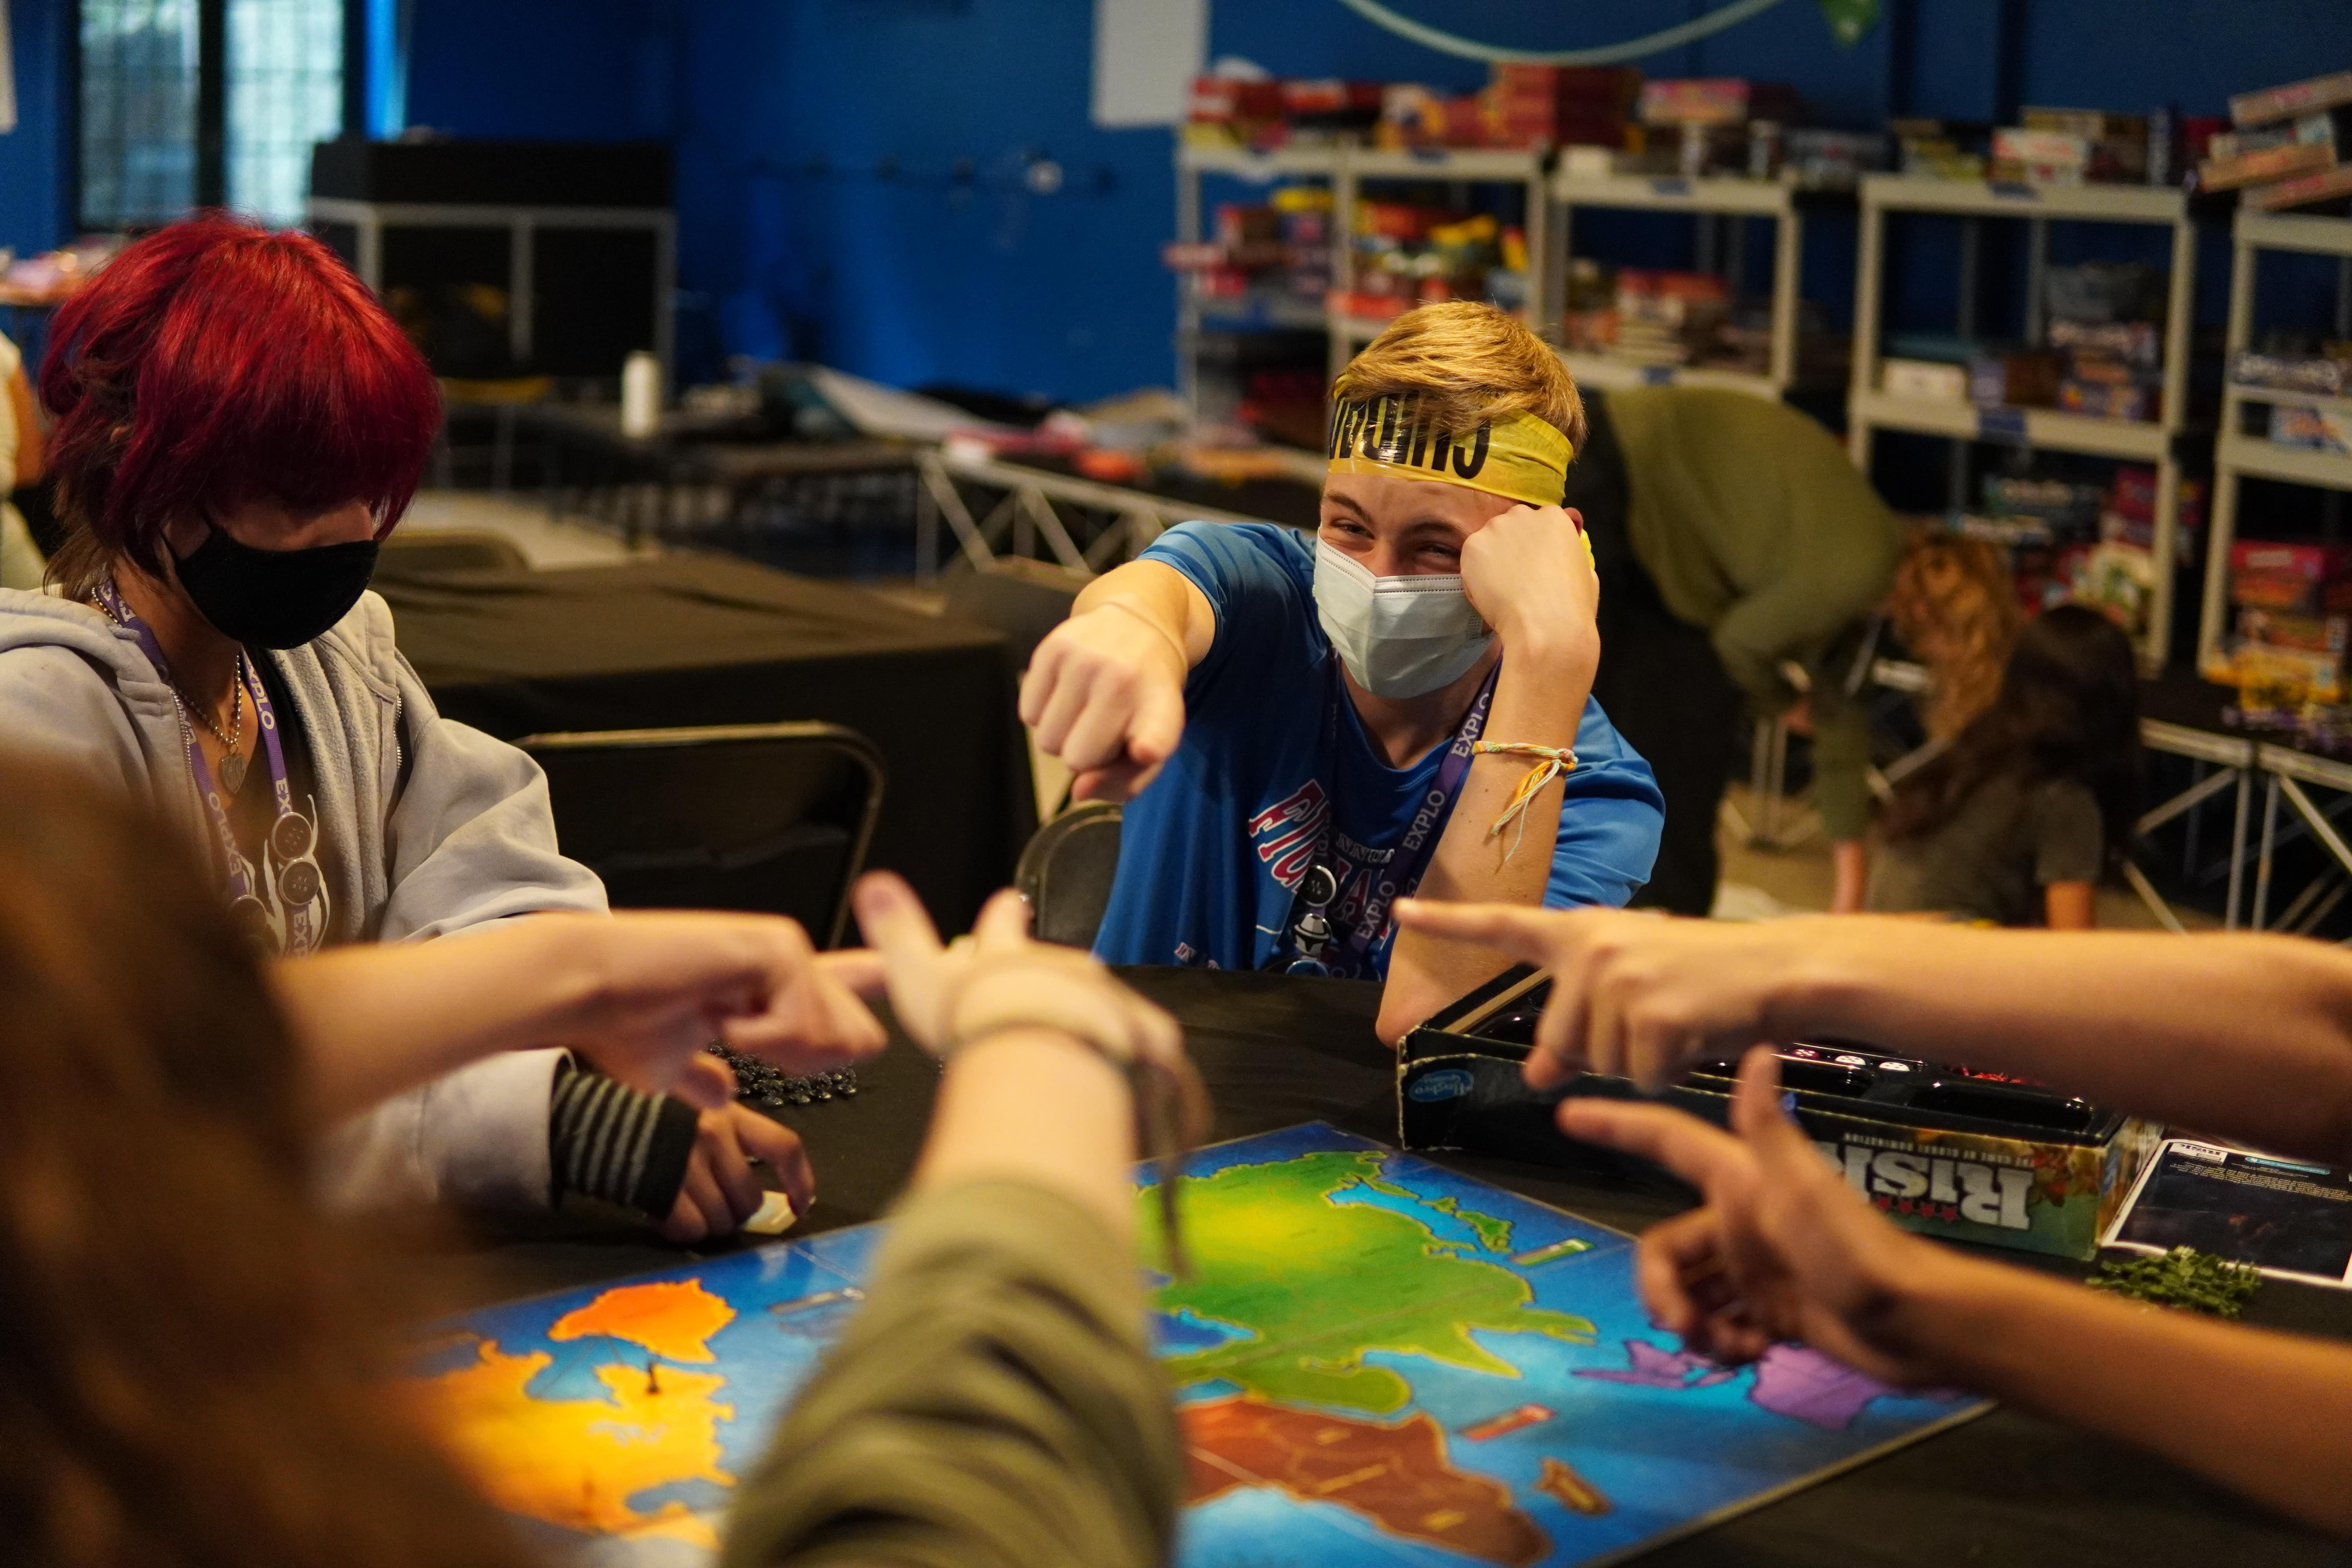 Students sitting at a round table around a game of Risk all point their fingers in the middle of the table at each other.